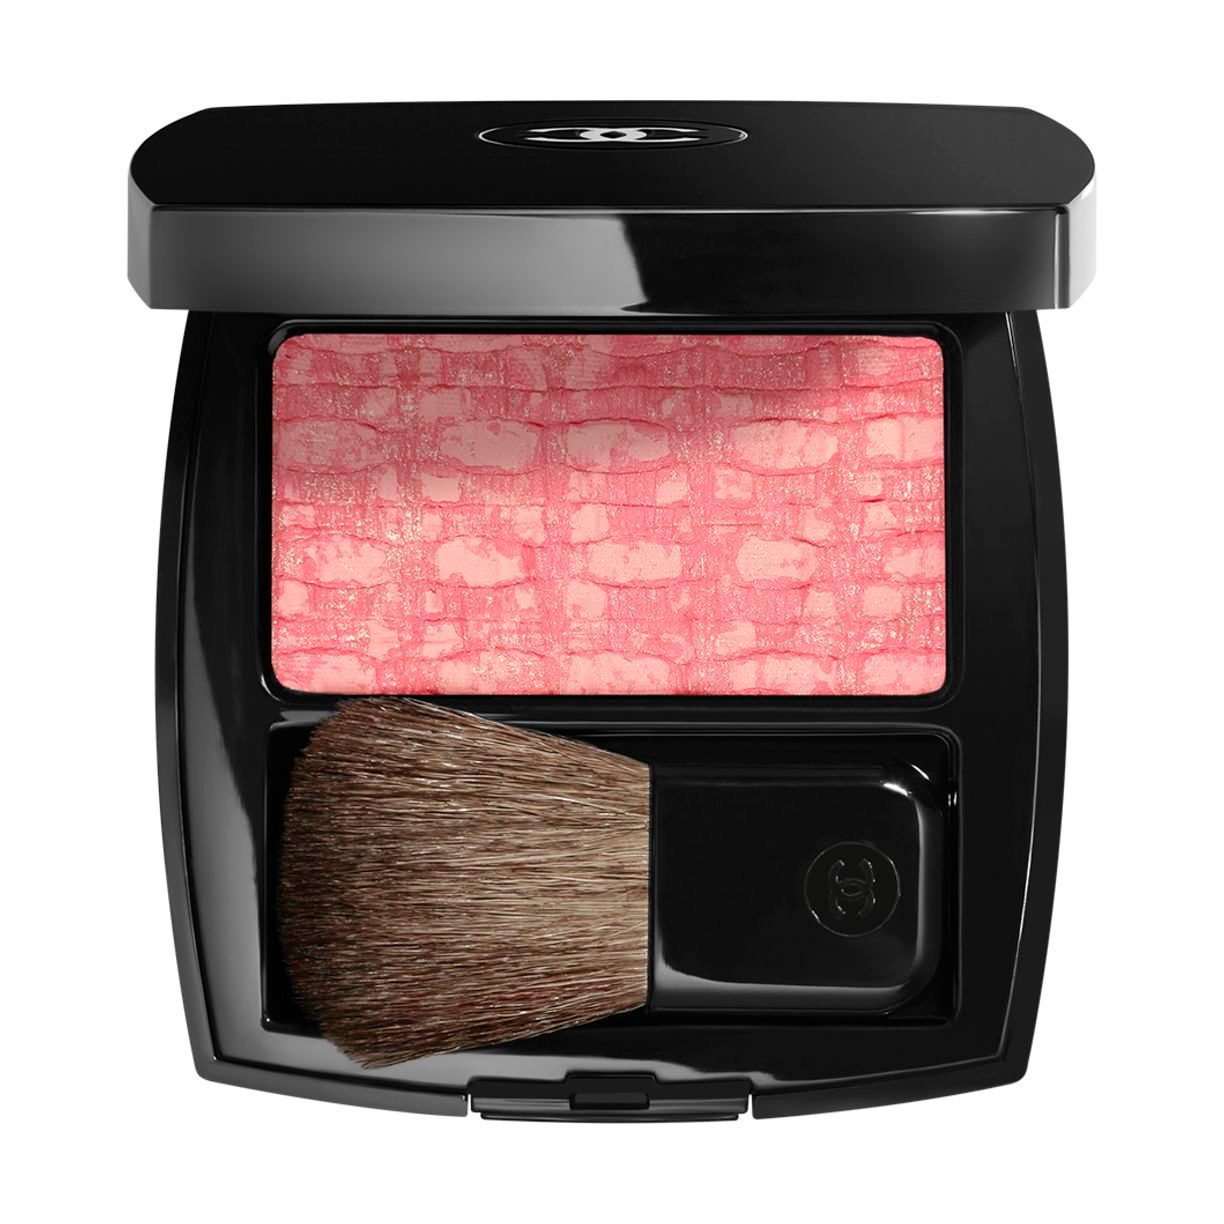 LES TISSAGES DE CHANEL DUO BLUSH MET TWEEDRELIËF 130 - TWEED EVANESCENT